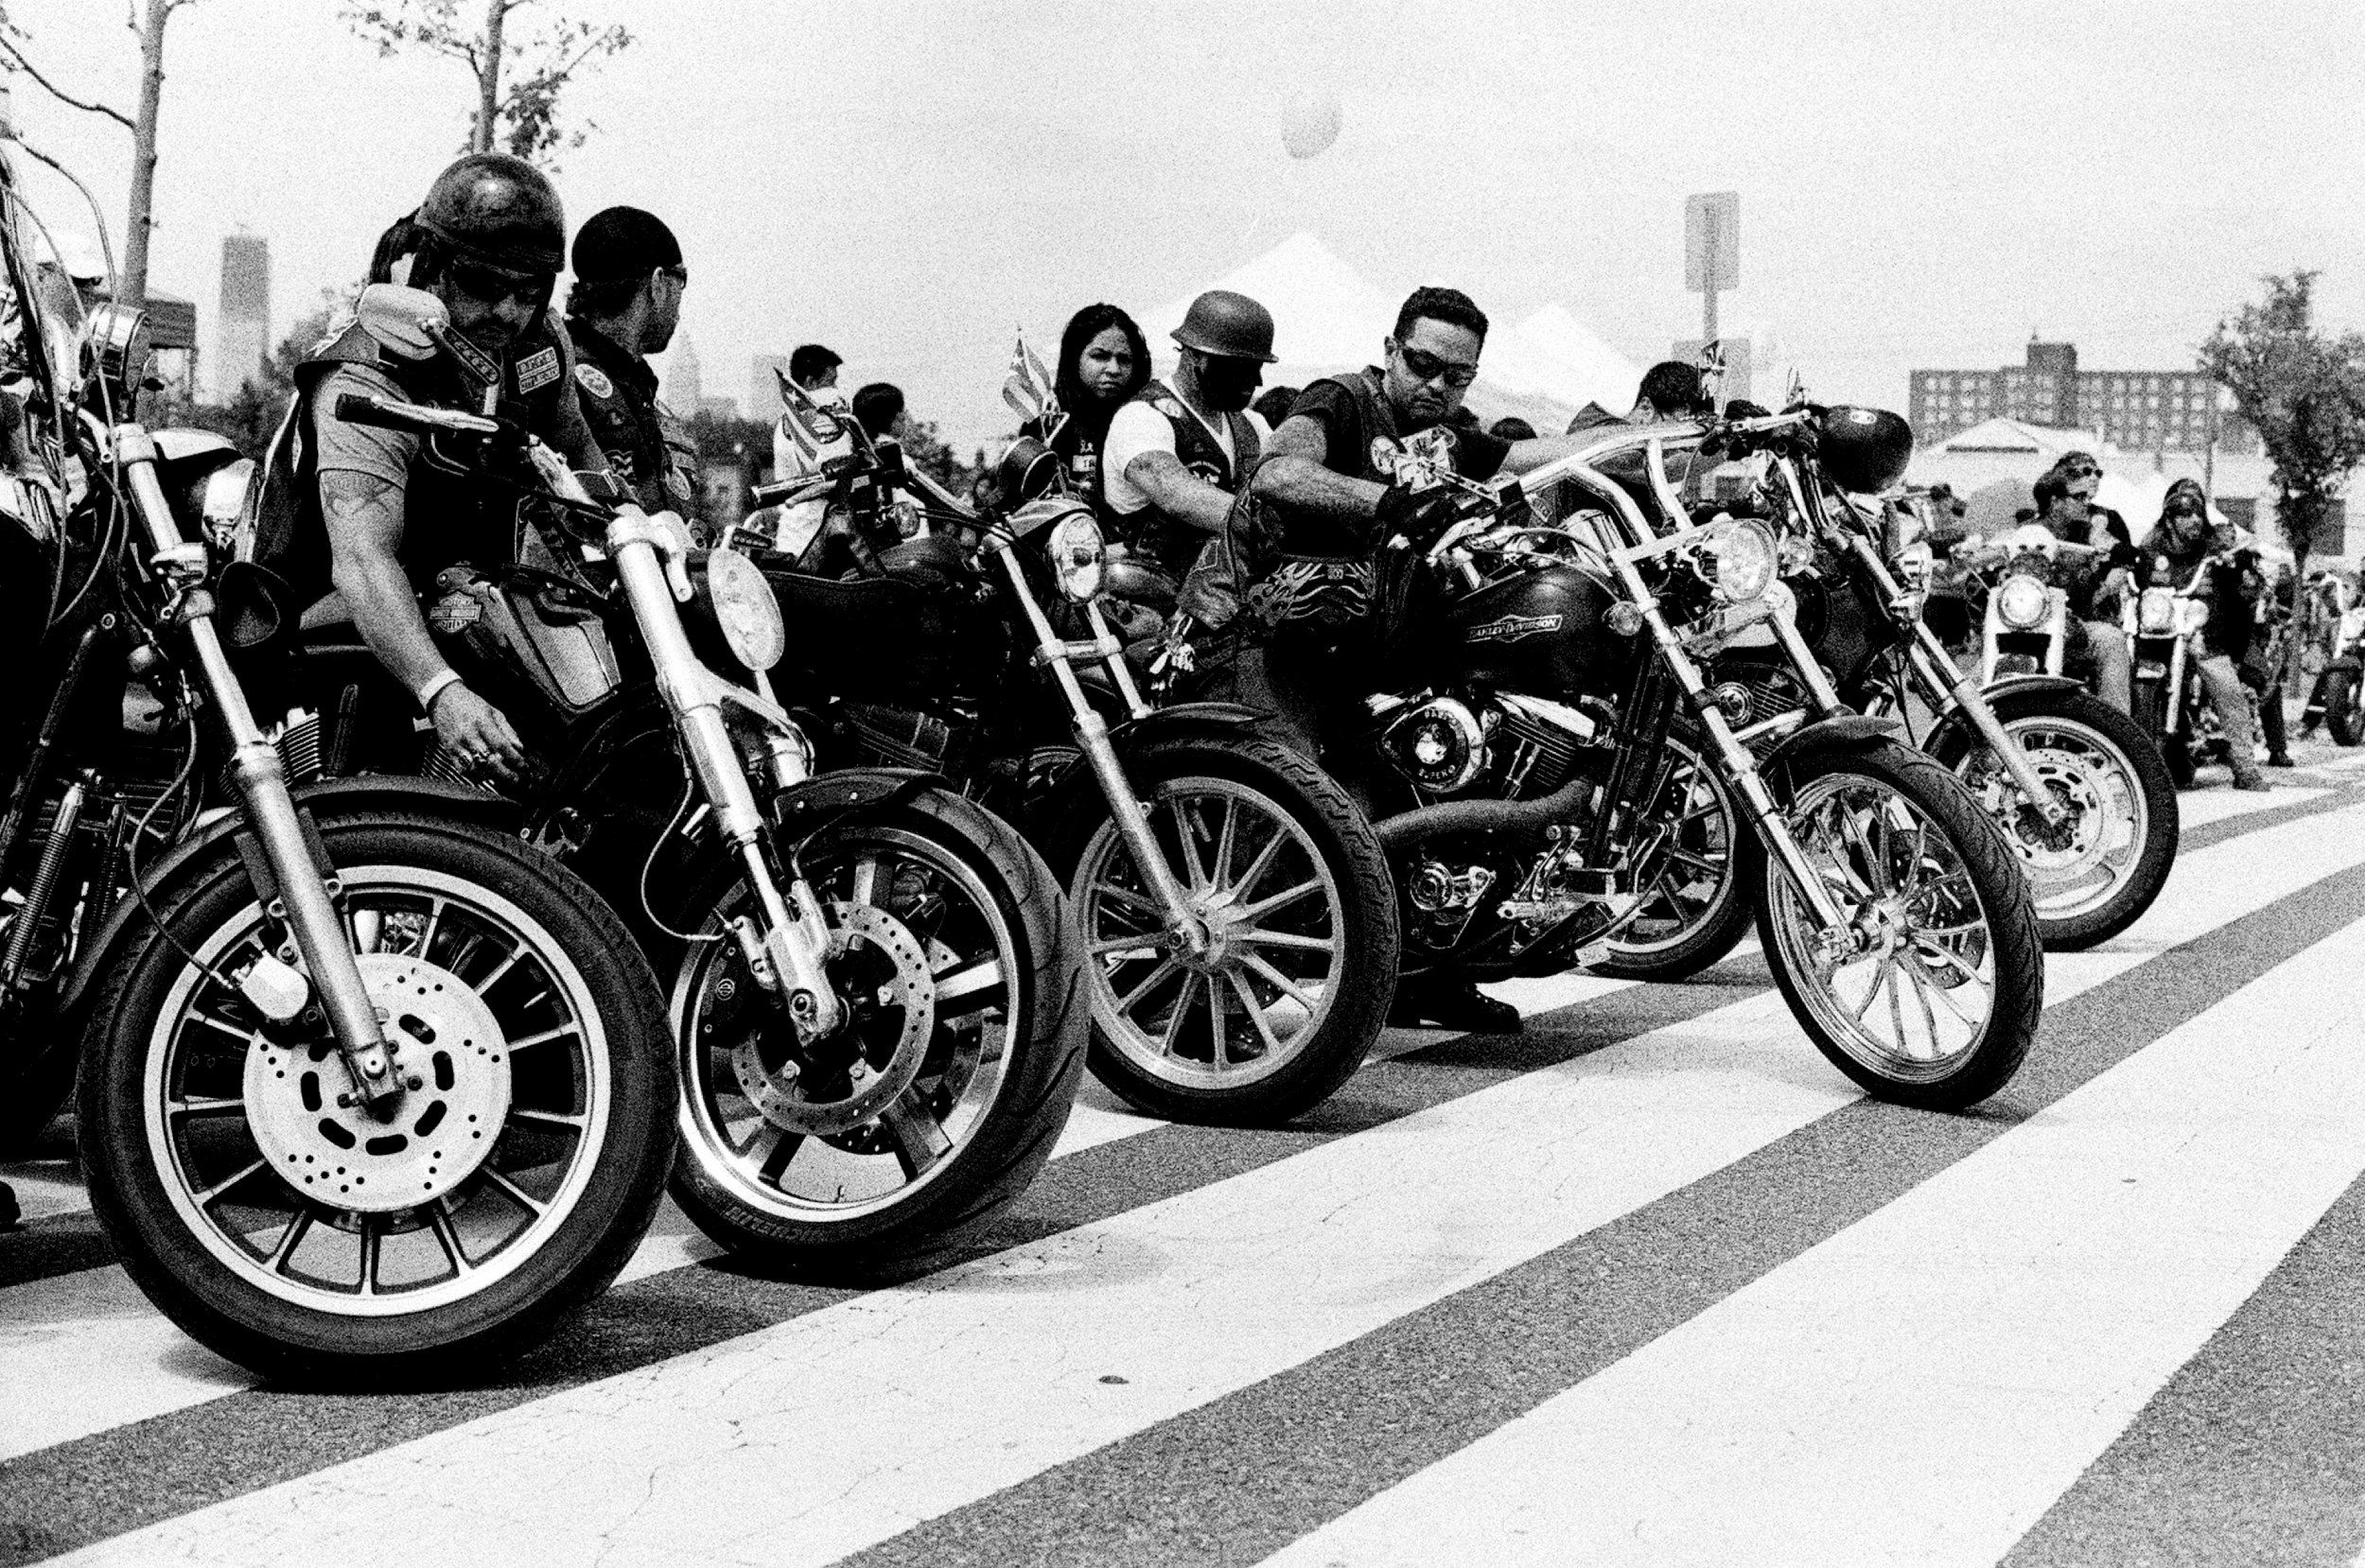 motorcycle gang photographer  The Plight of the Forbidden Ones, the Notorious Brooklyn Motorcycle Club